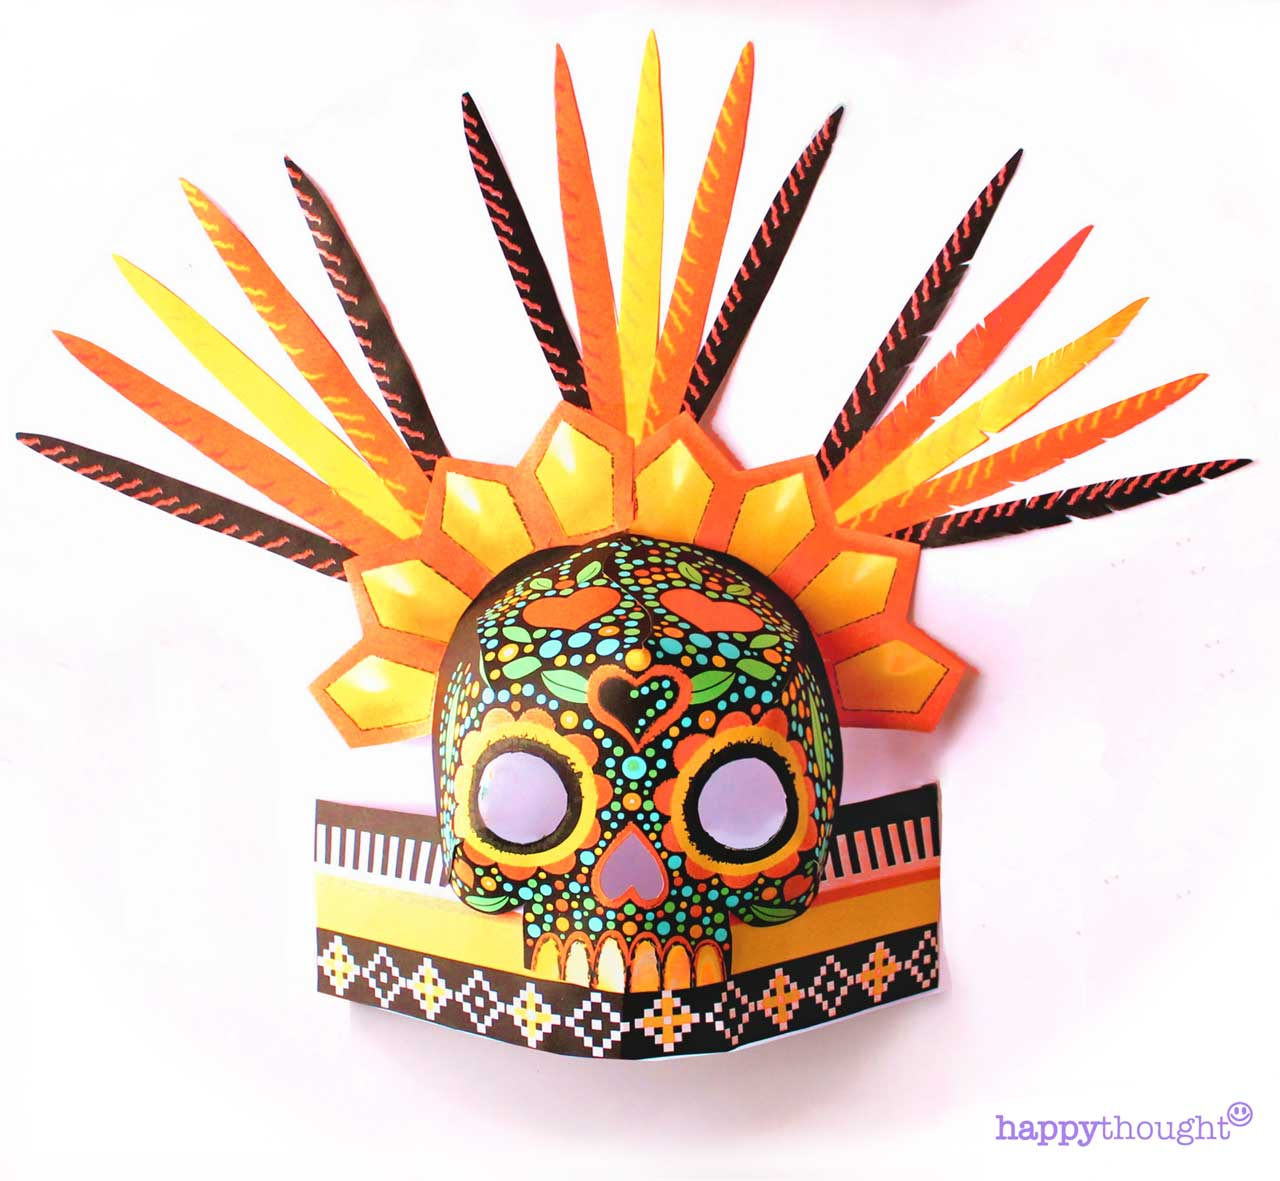 Make your own DIY chimalli headdress crown